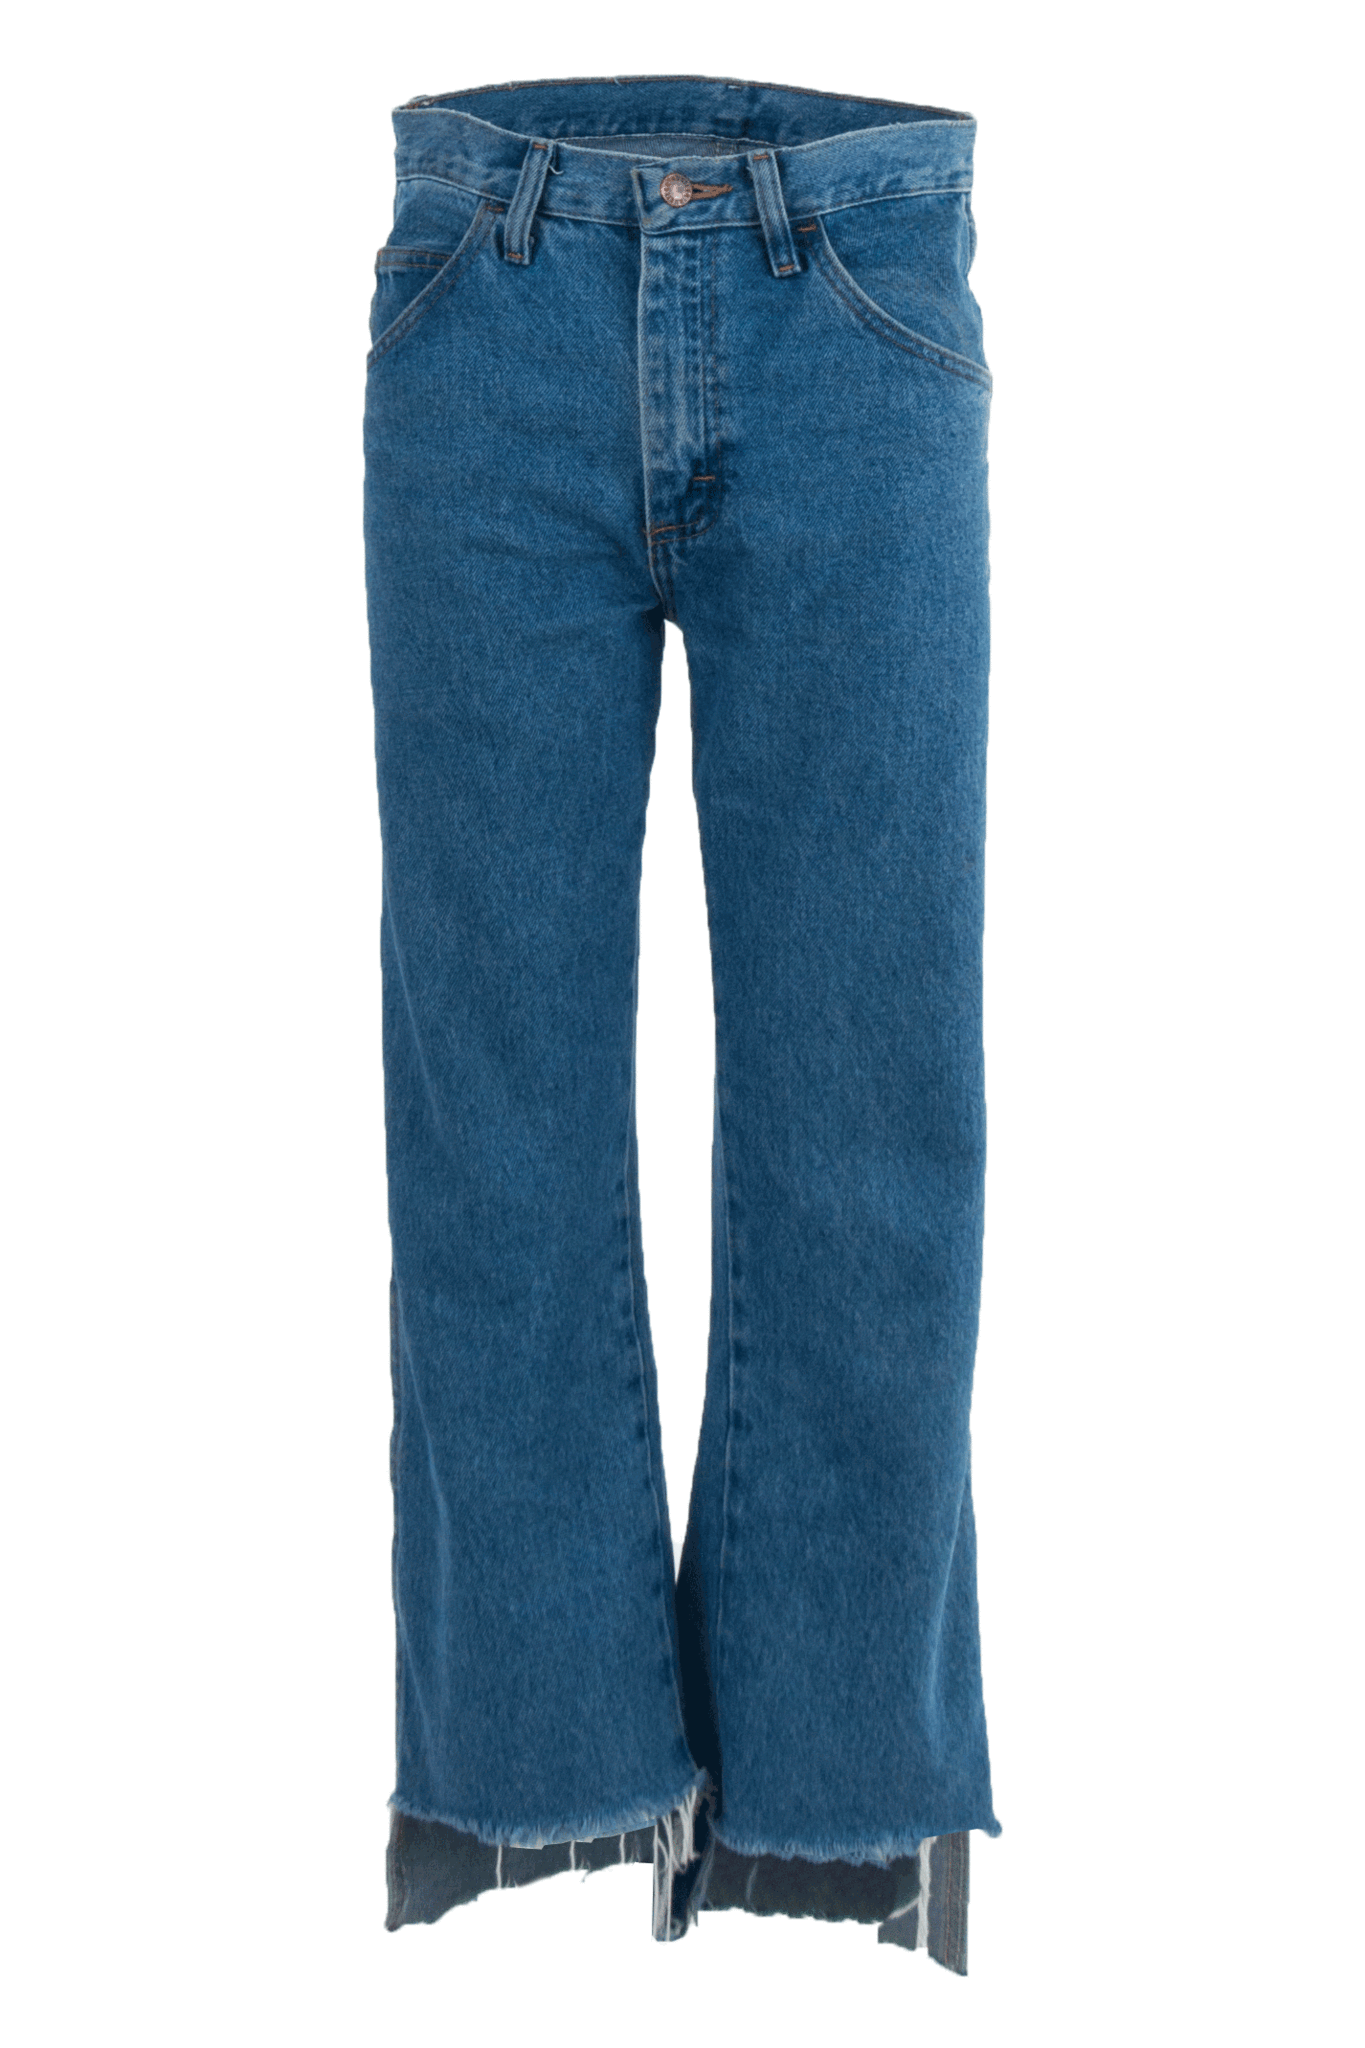 vintage jeans with uneven raw hem